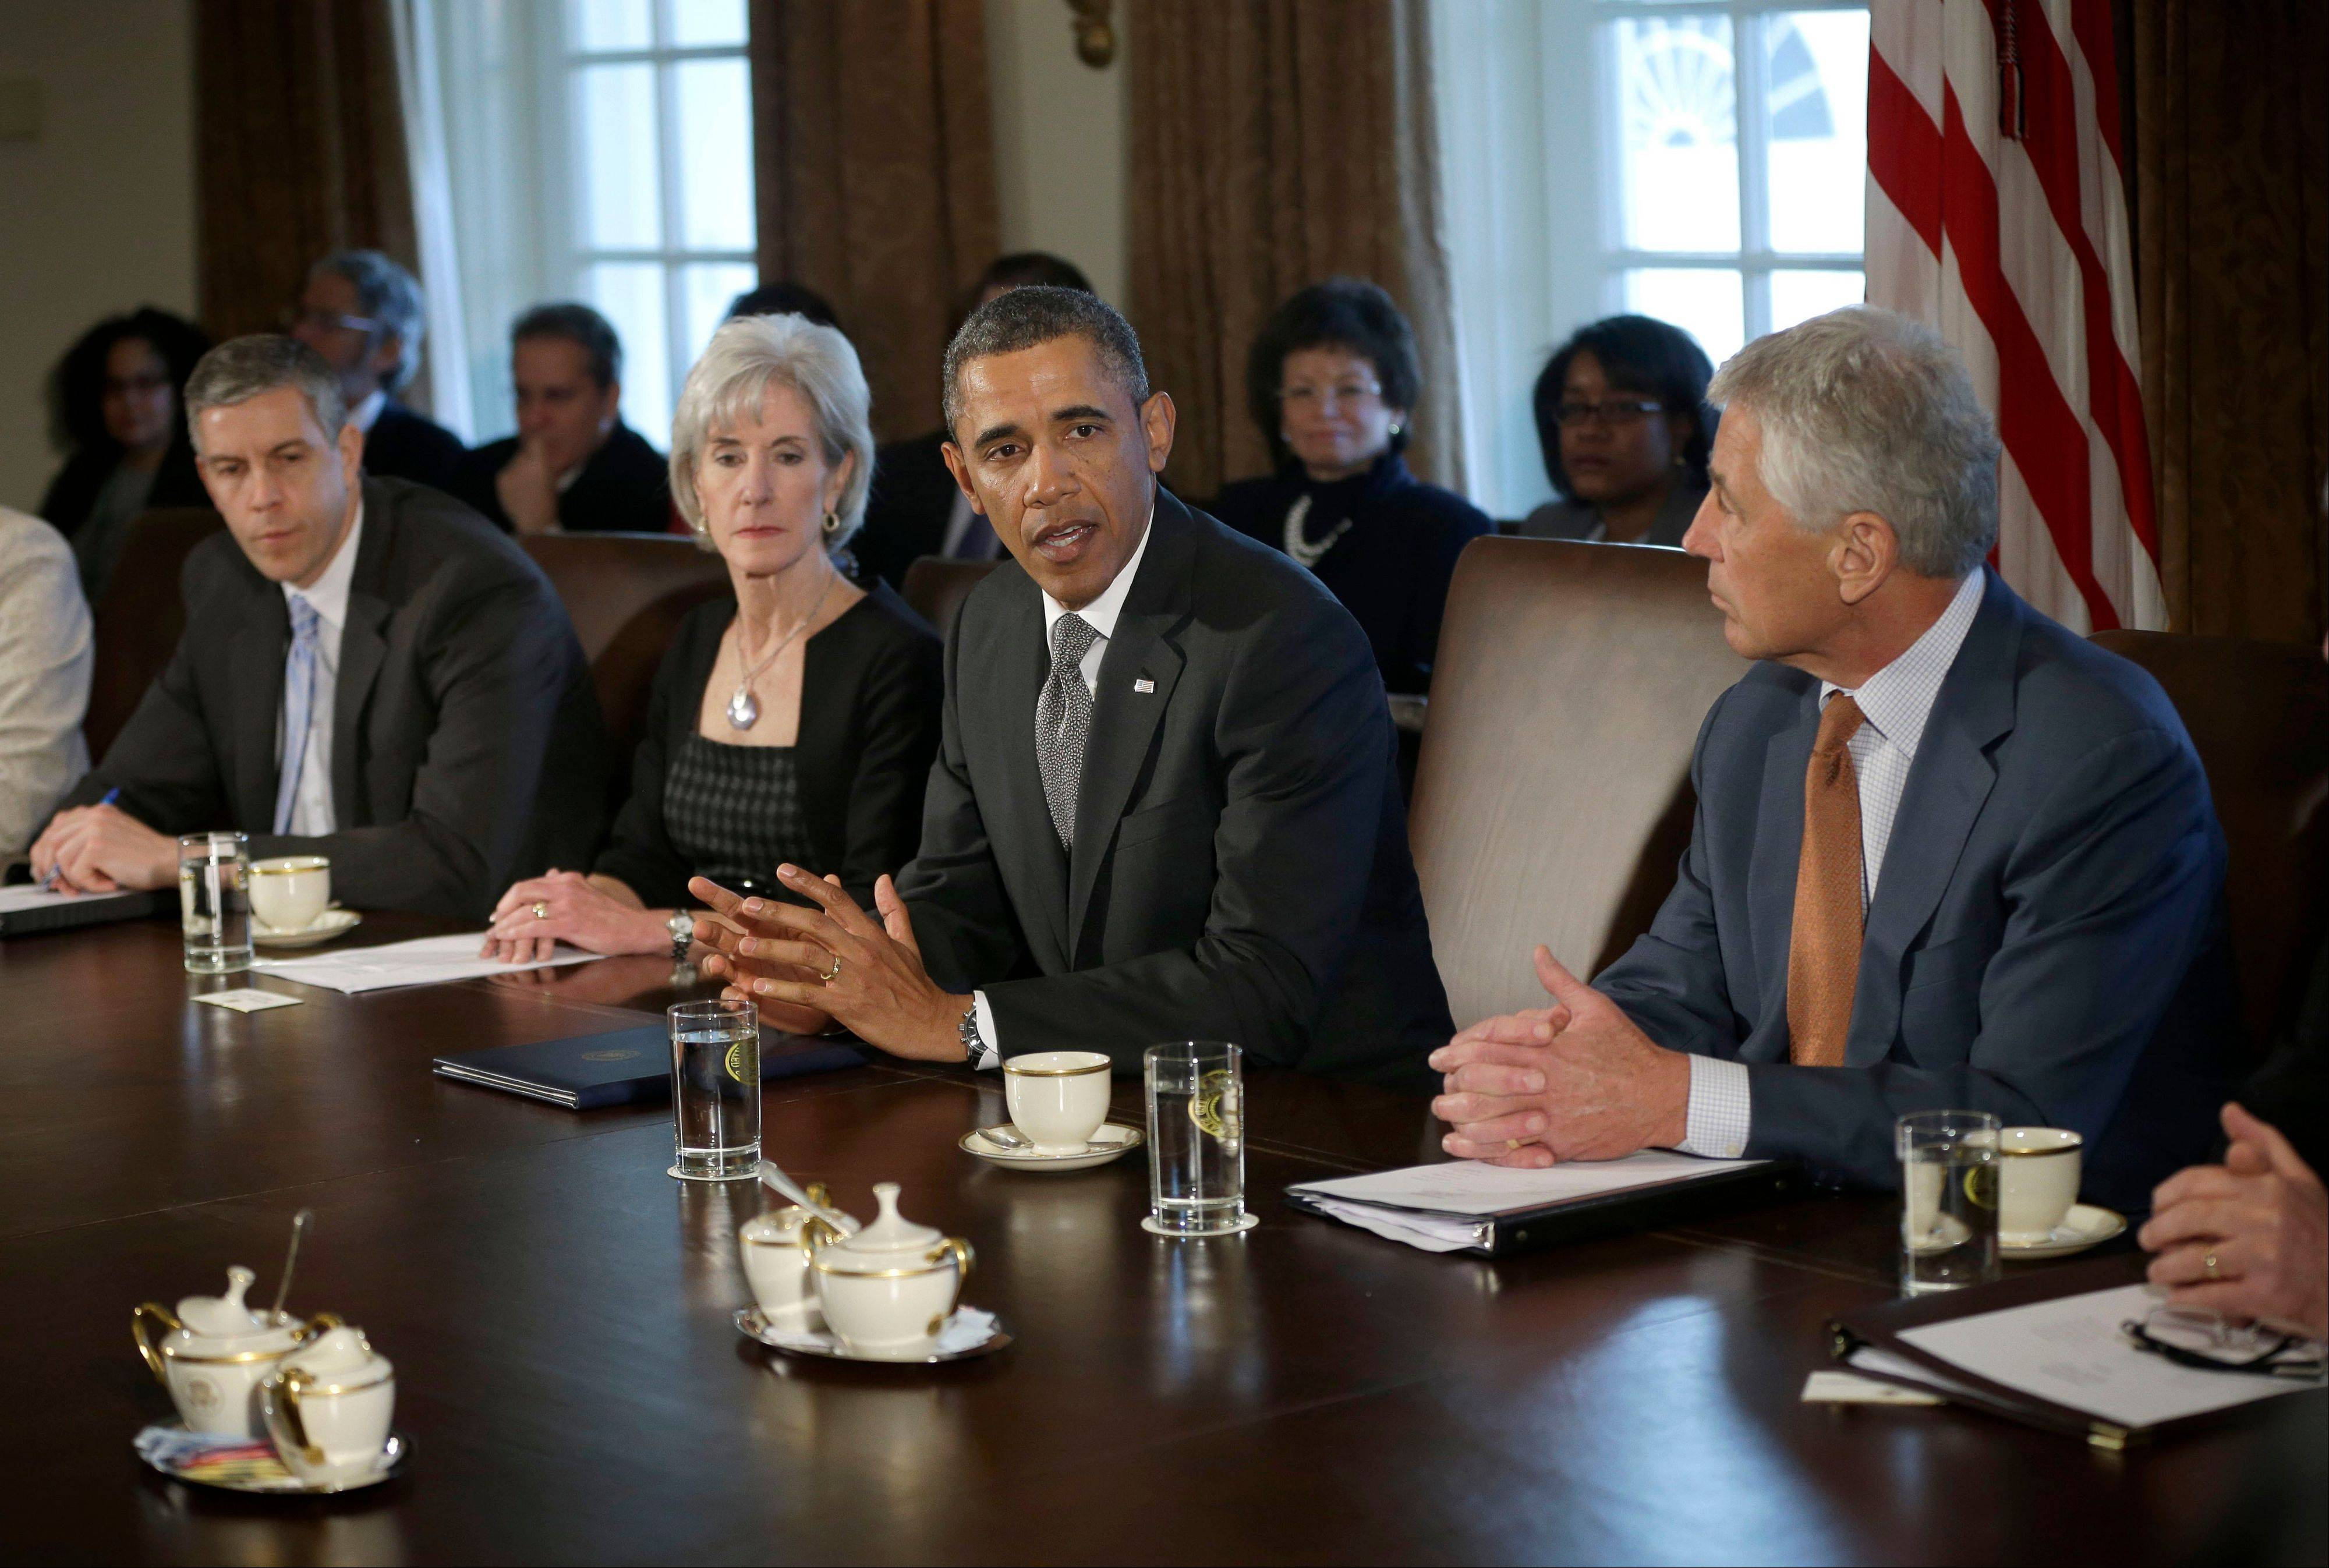 President Barack Obama speaks to members of the media at the start of a Cabinet meeting at the White House Monday. From left are, Education Secretary Arne Duncan, Health and Human Services Secretary Kathleen Sebelius, the president and Defense Secretary Chuck Hagel.